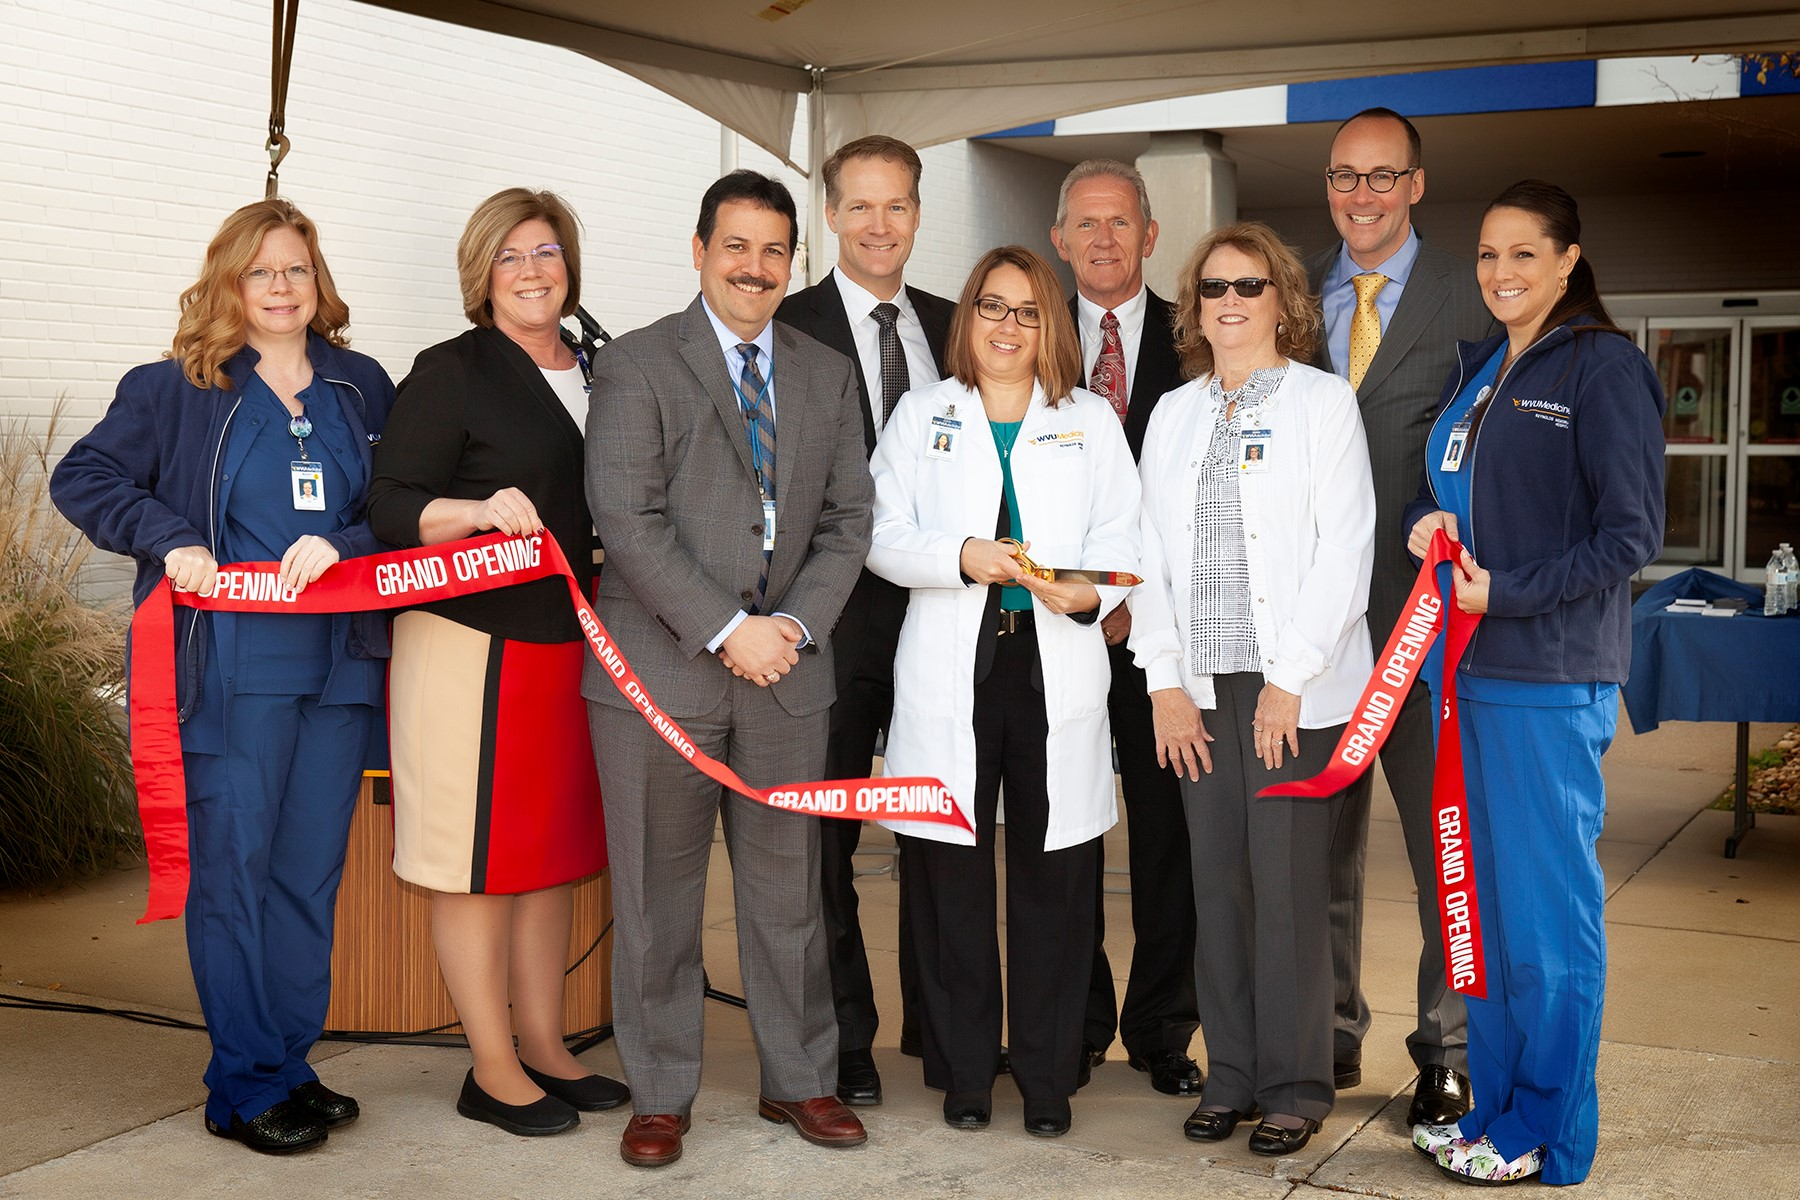 (From left to right) Mary Clegg, Women's and Newborn Center nurse; Margaret Denny, Director of Nursing, Reynolds Memorial Hospital; Mike Ortiz, VP of Clinical Operations, Reynolds Memorial Hospital; David Hess, M.D., president and CEO, Reynolds Memorial Hospital; Nicole Carlson, M.D., Reynolds Memorial Hospital; Bernie Twigg, Chairman of the Board of Directors, Reynolds Memorial Hospital; Kathy Meyer, Women's and Newborn Center Nurse Manager, Reynolds Memorial Hospital; Albert L. Wright, Jr., president and CEO, WVU Health System; and Amanda Zelkowski-Elliott, Women's and Newborn Center nurse, Reynolds Memorial Hospital